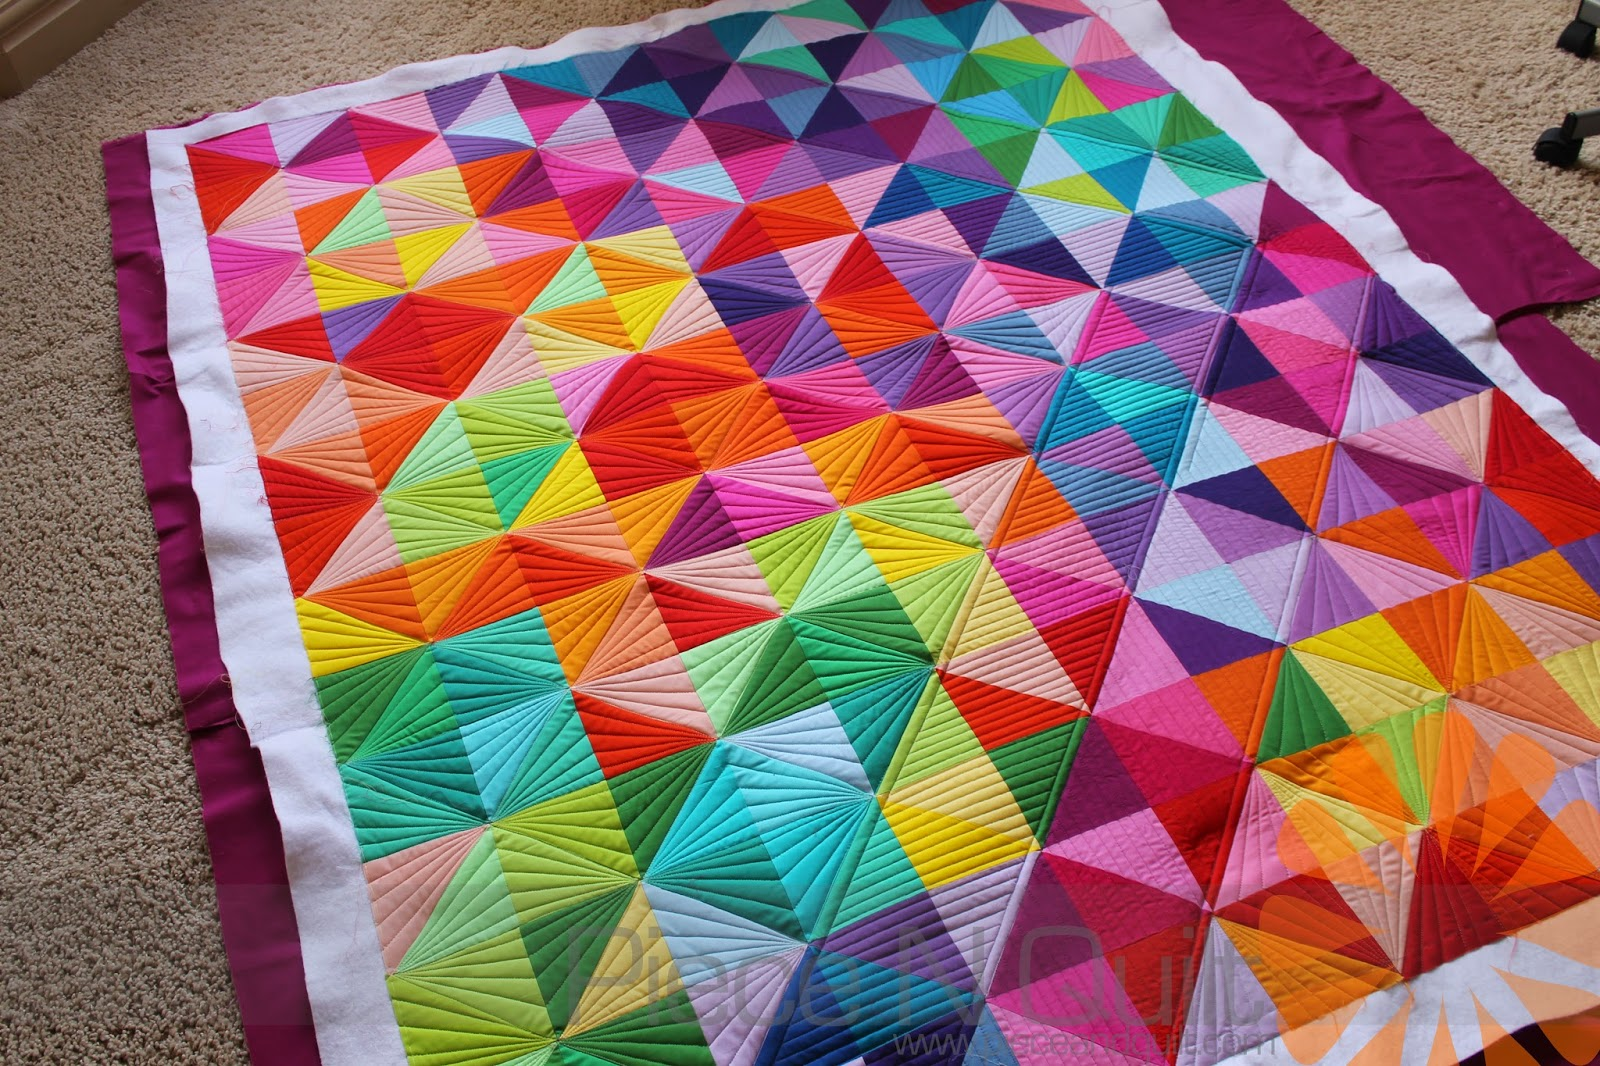 Piece N Quilt Half Square Triangle Quilt Custom Machine Quilting By Natalia Bonner,Strawberry Wine Song